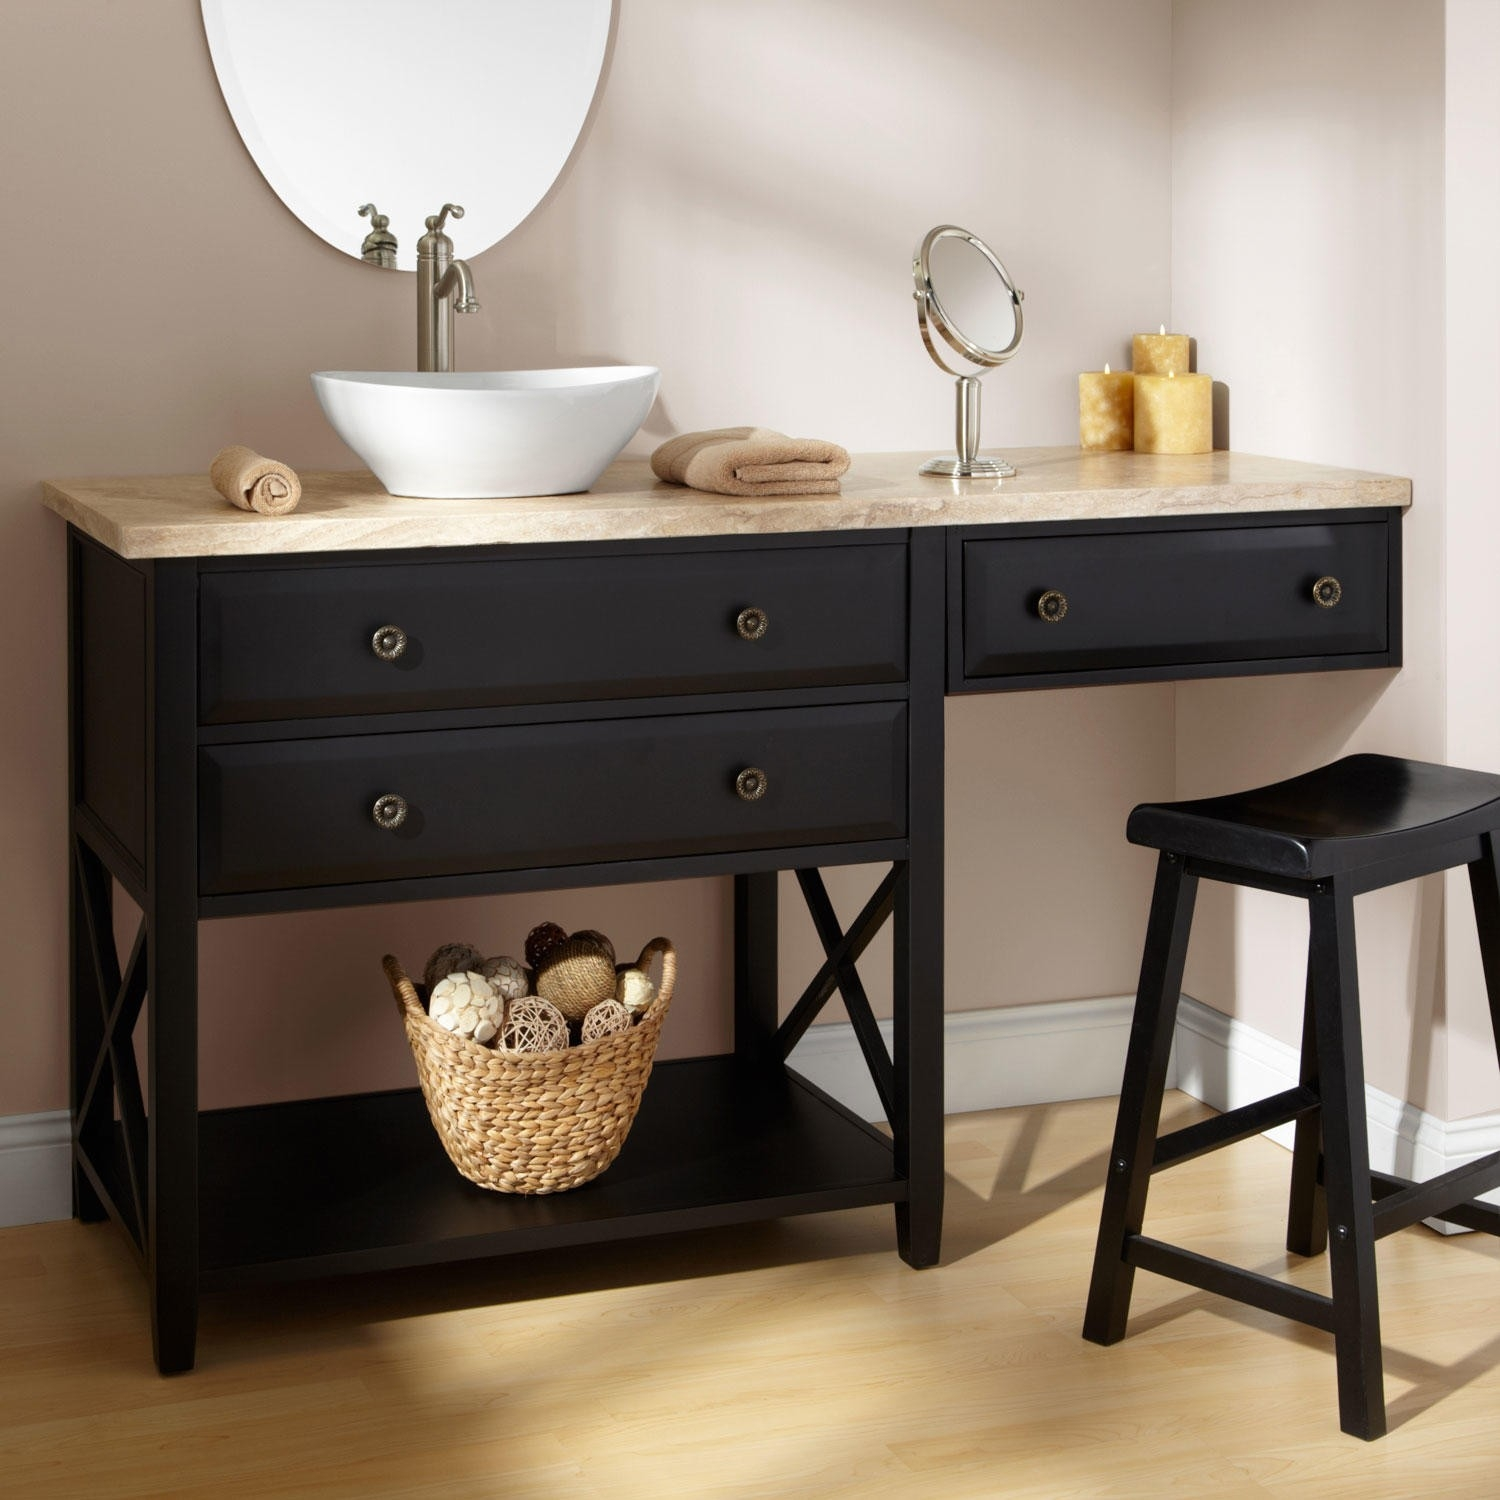 Bathroom Sink Vanity With Makeup Table